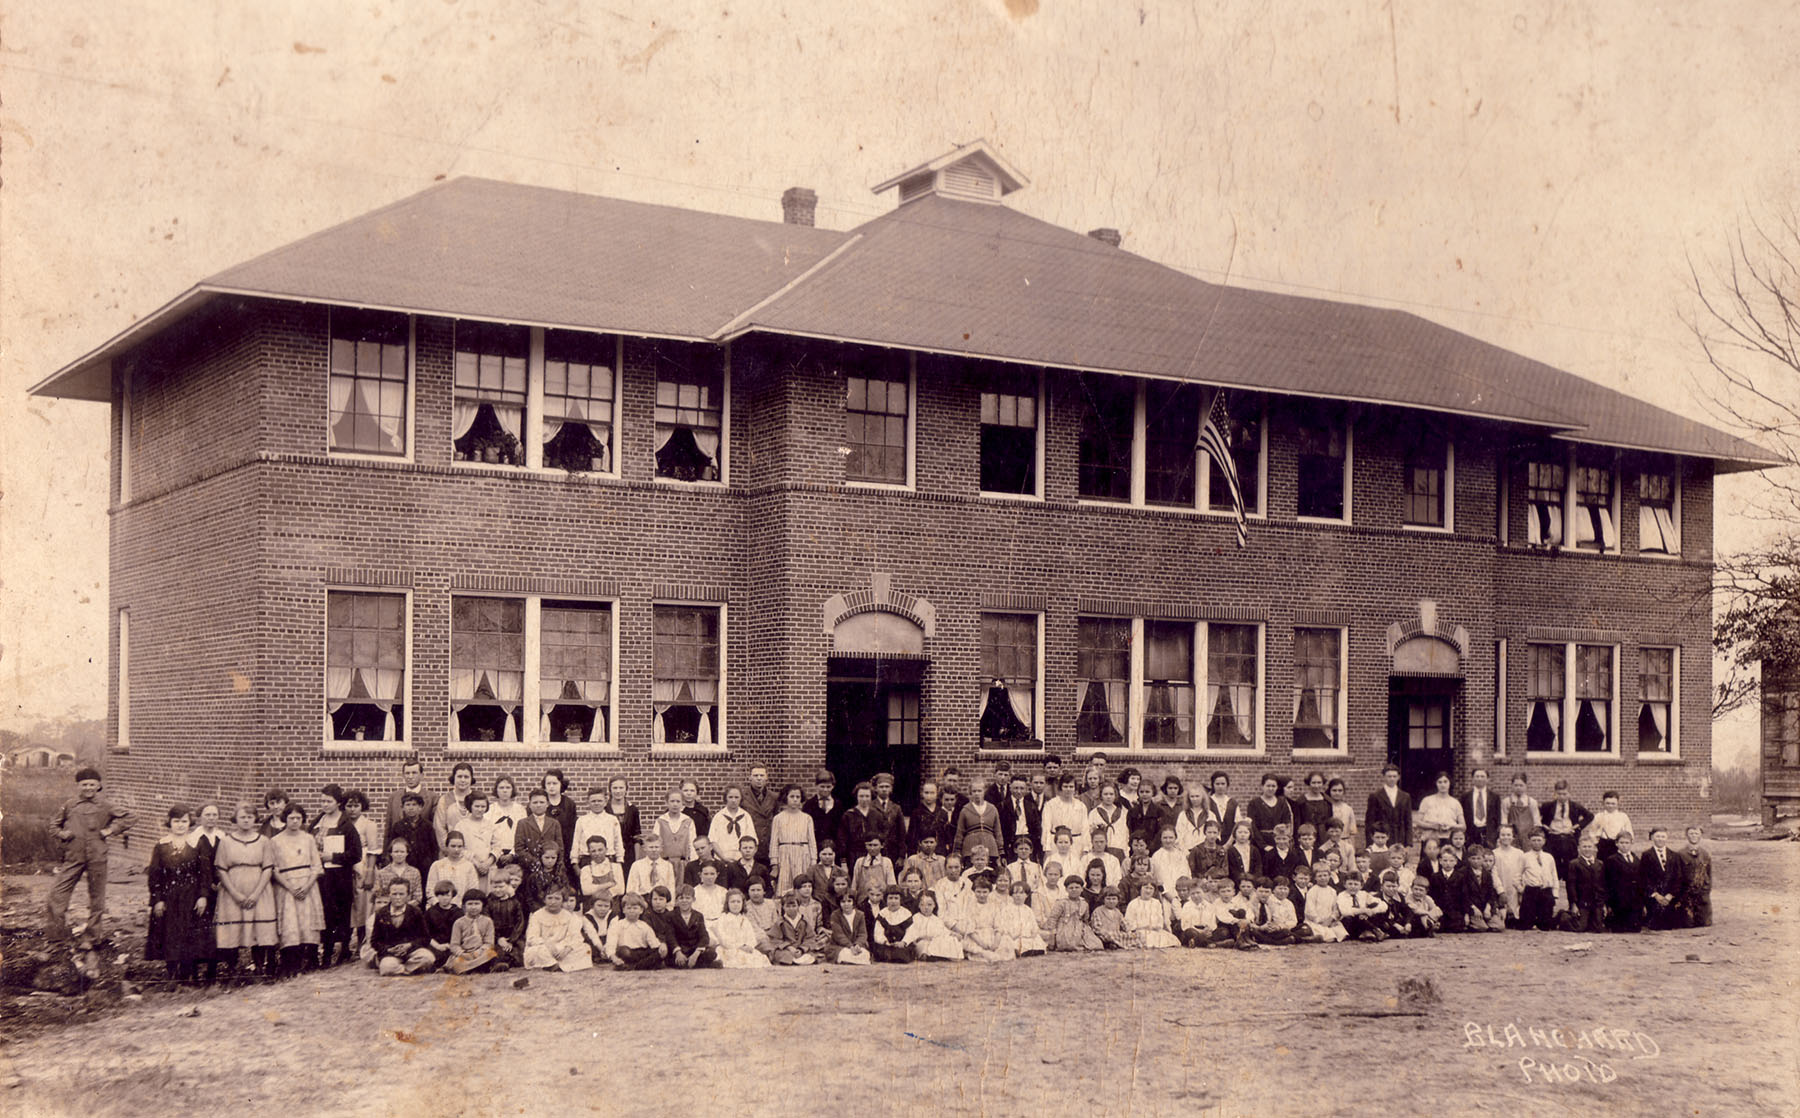 Blythewood School about 1920